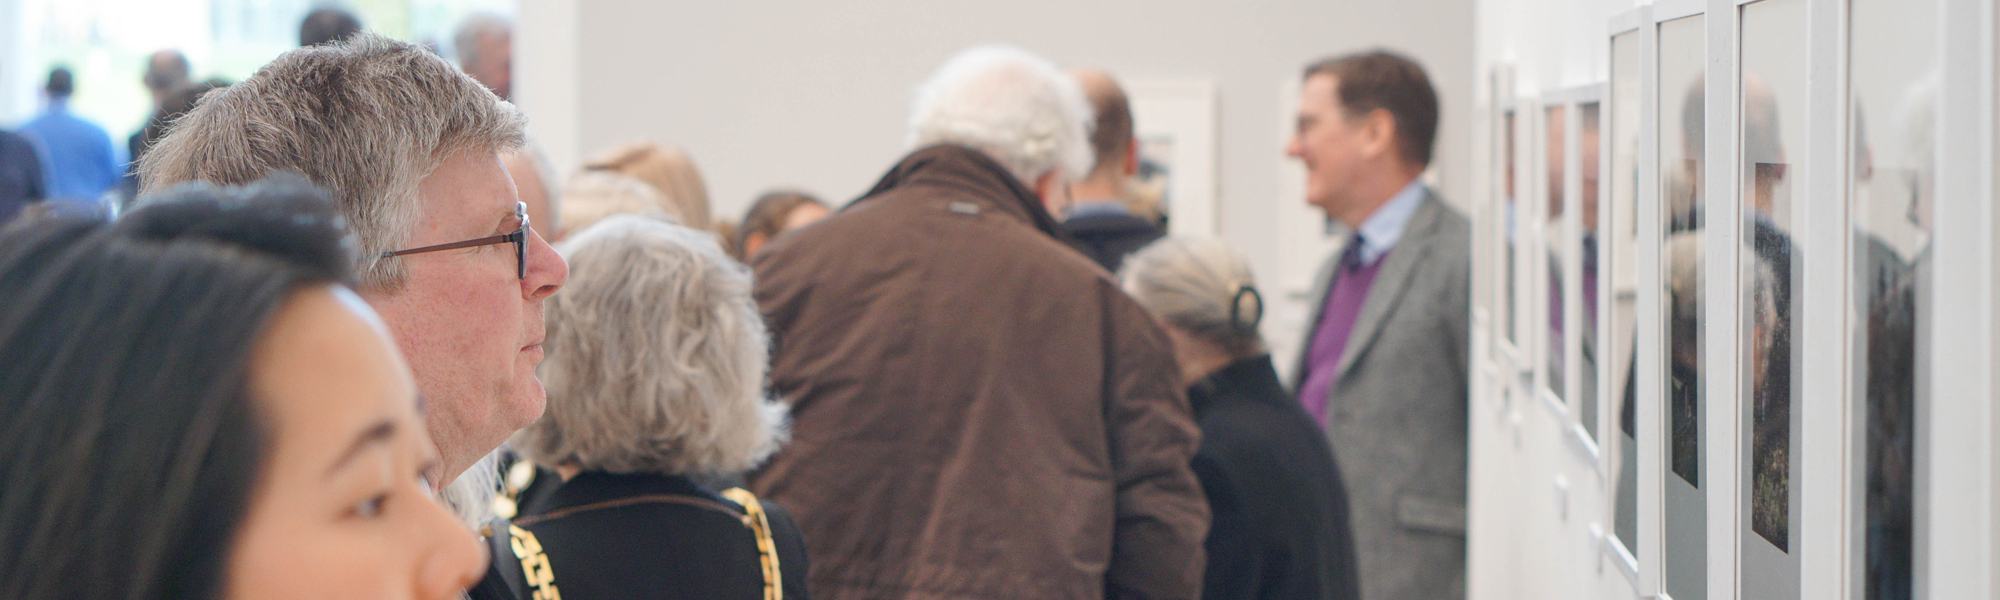 Visitors looking at art in an exhibition